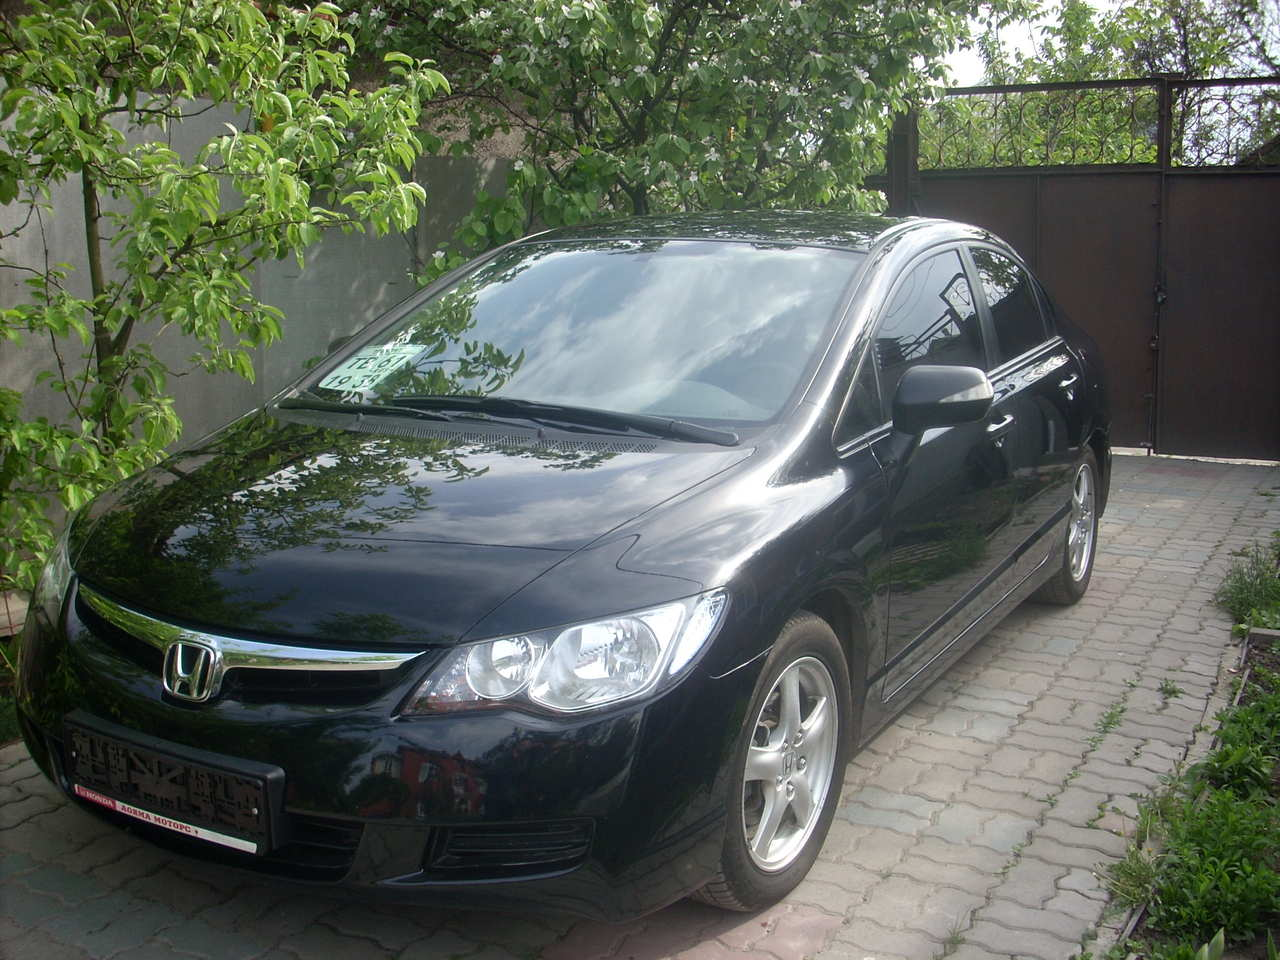 2009 Honda Civic Gasoline FF Manual For Sale